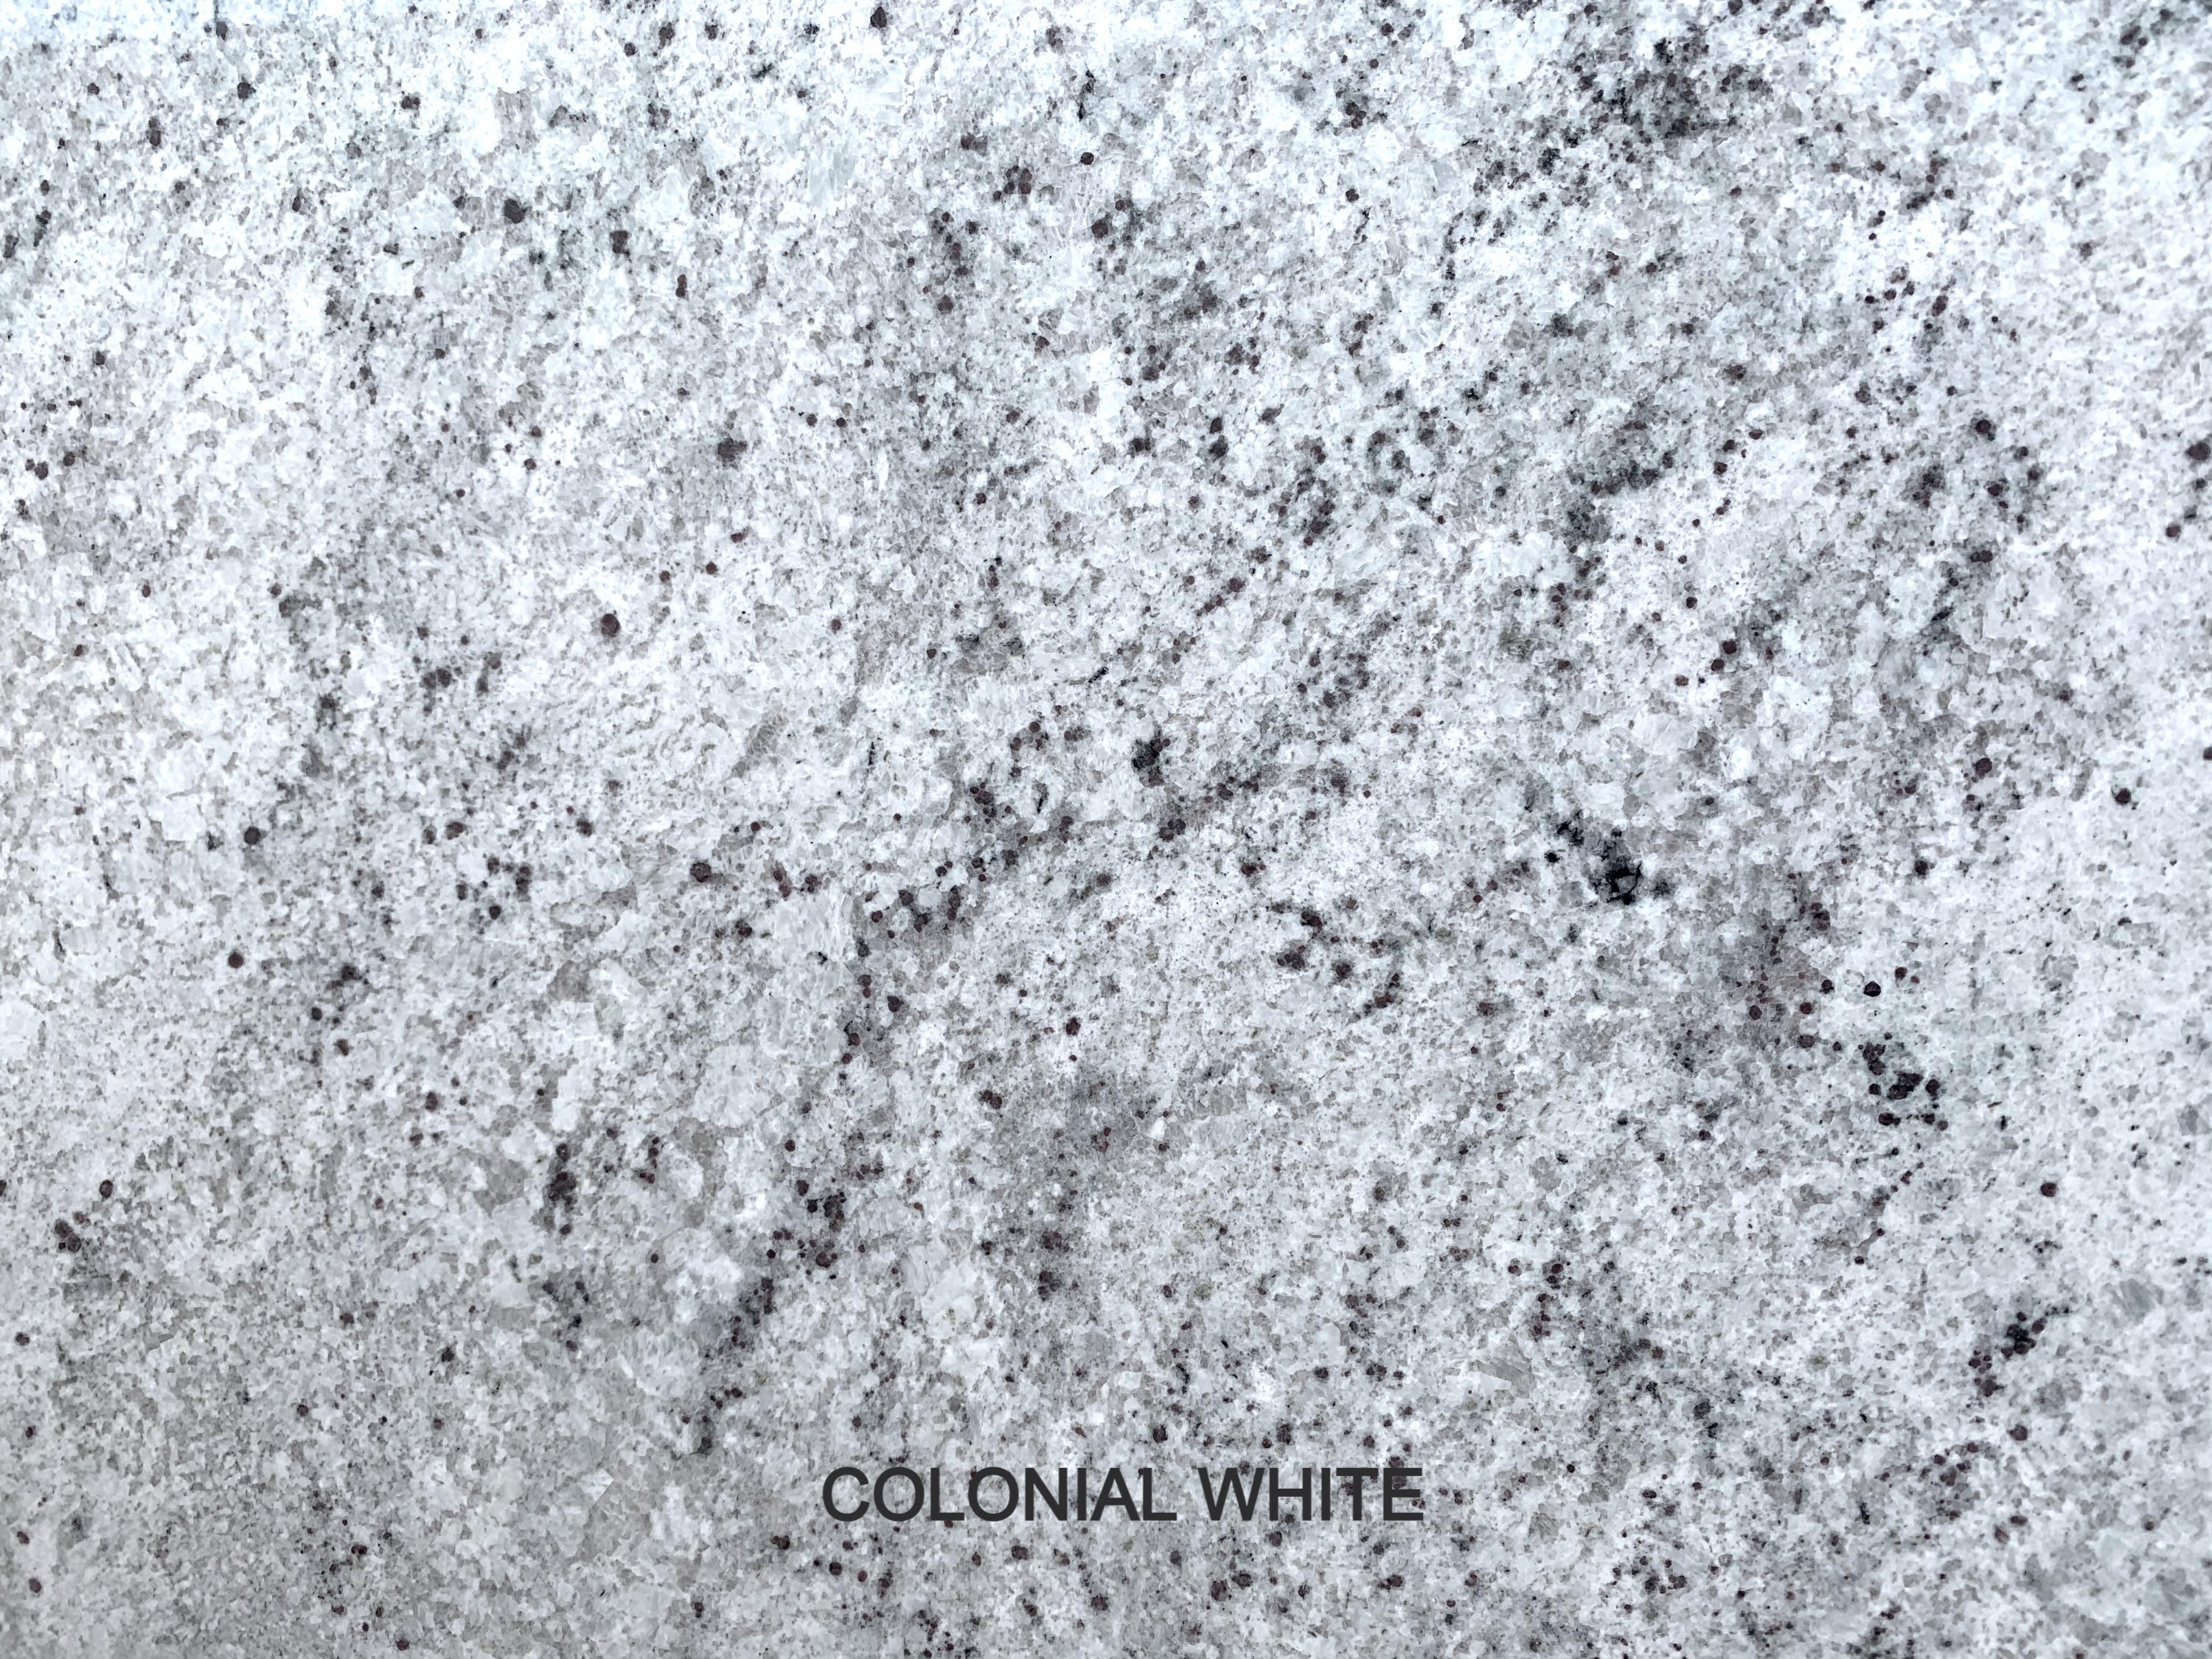 COLONIAL WHITE